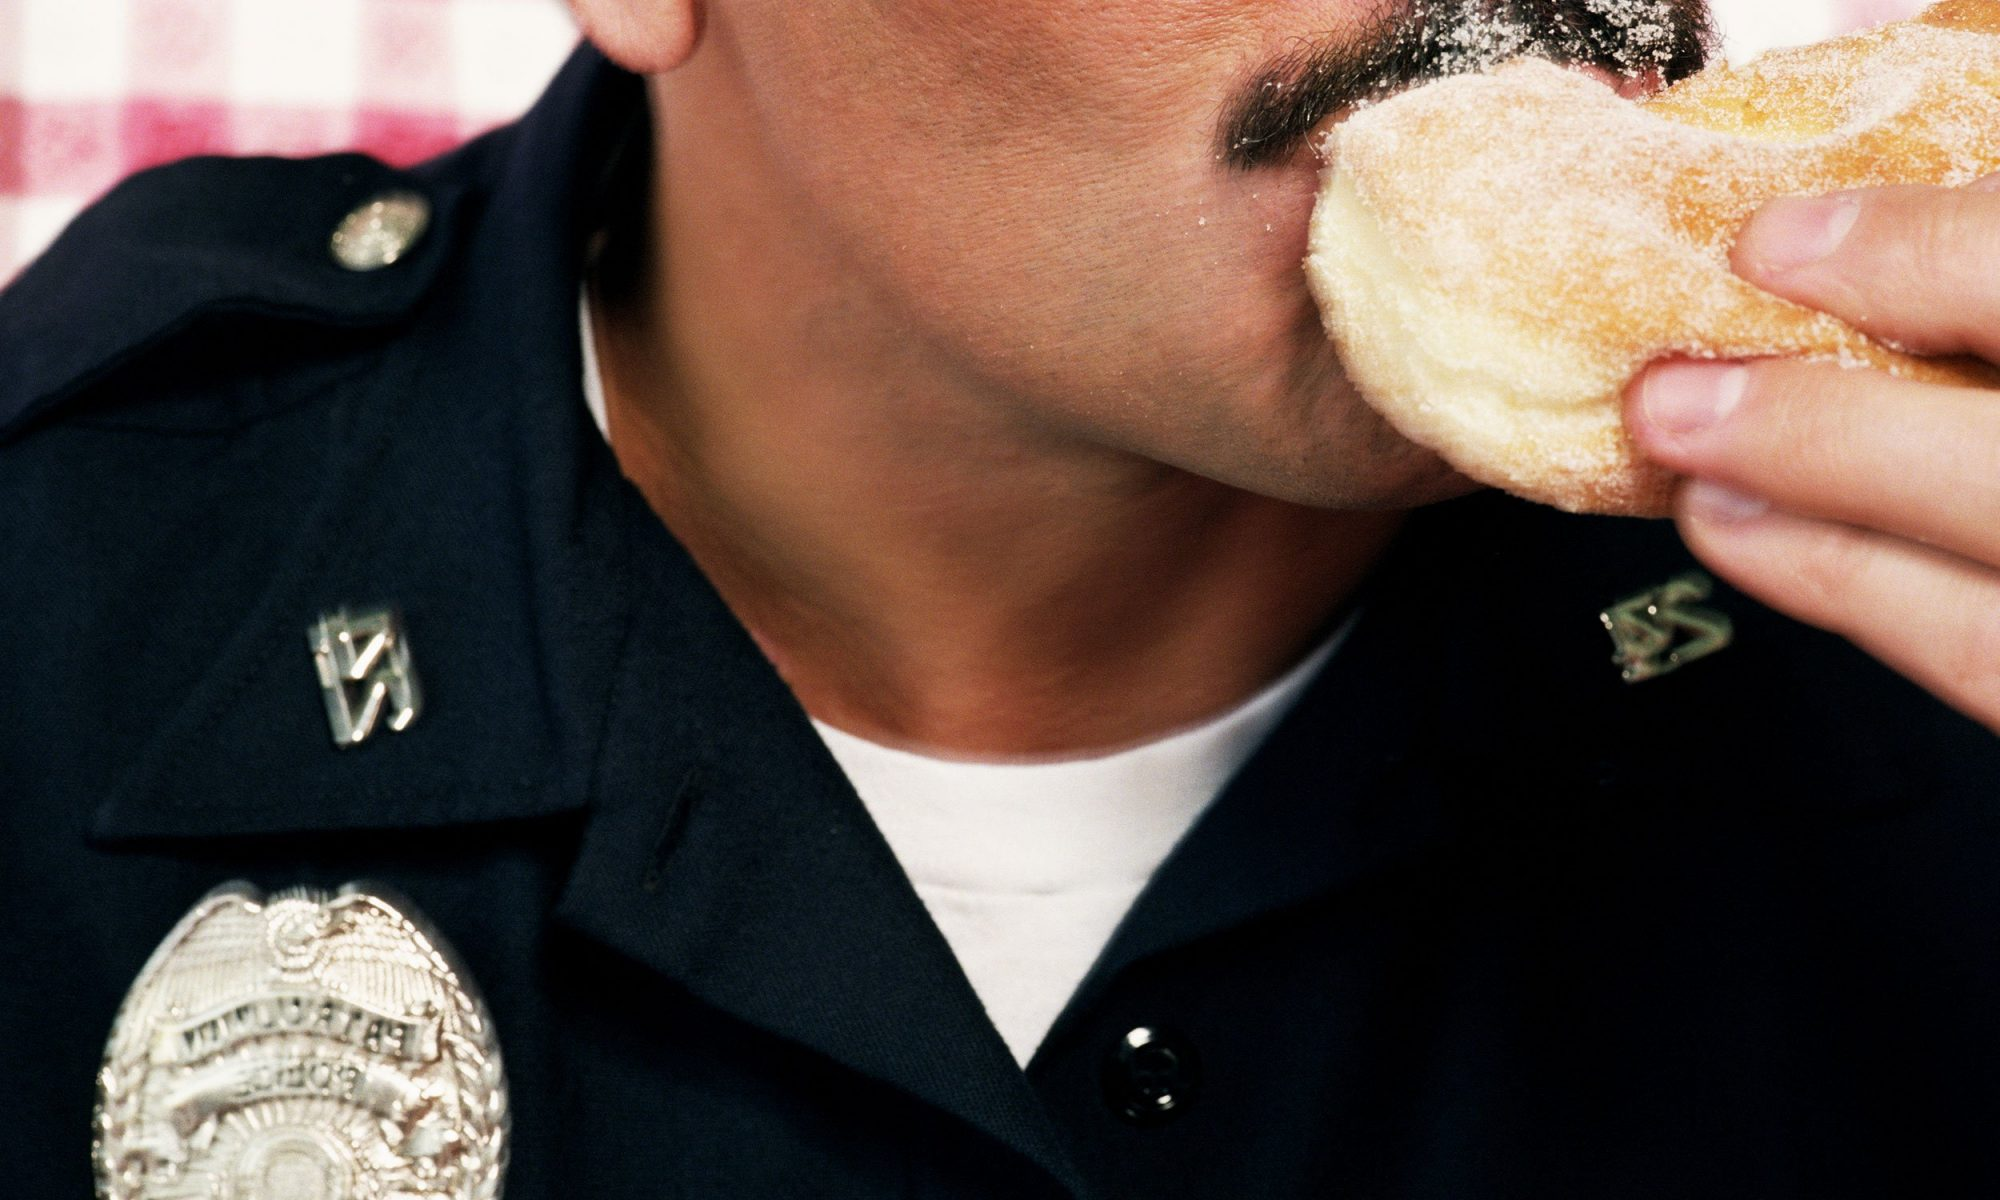 EC: Why Do Cops Love Doughnuts So Much?